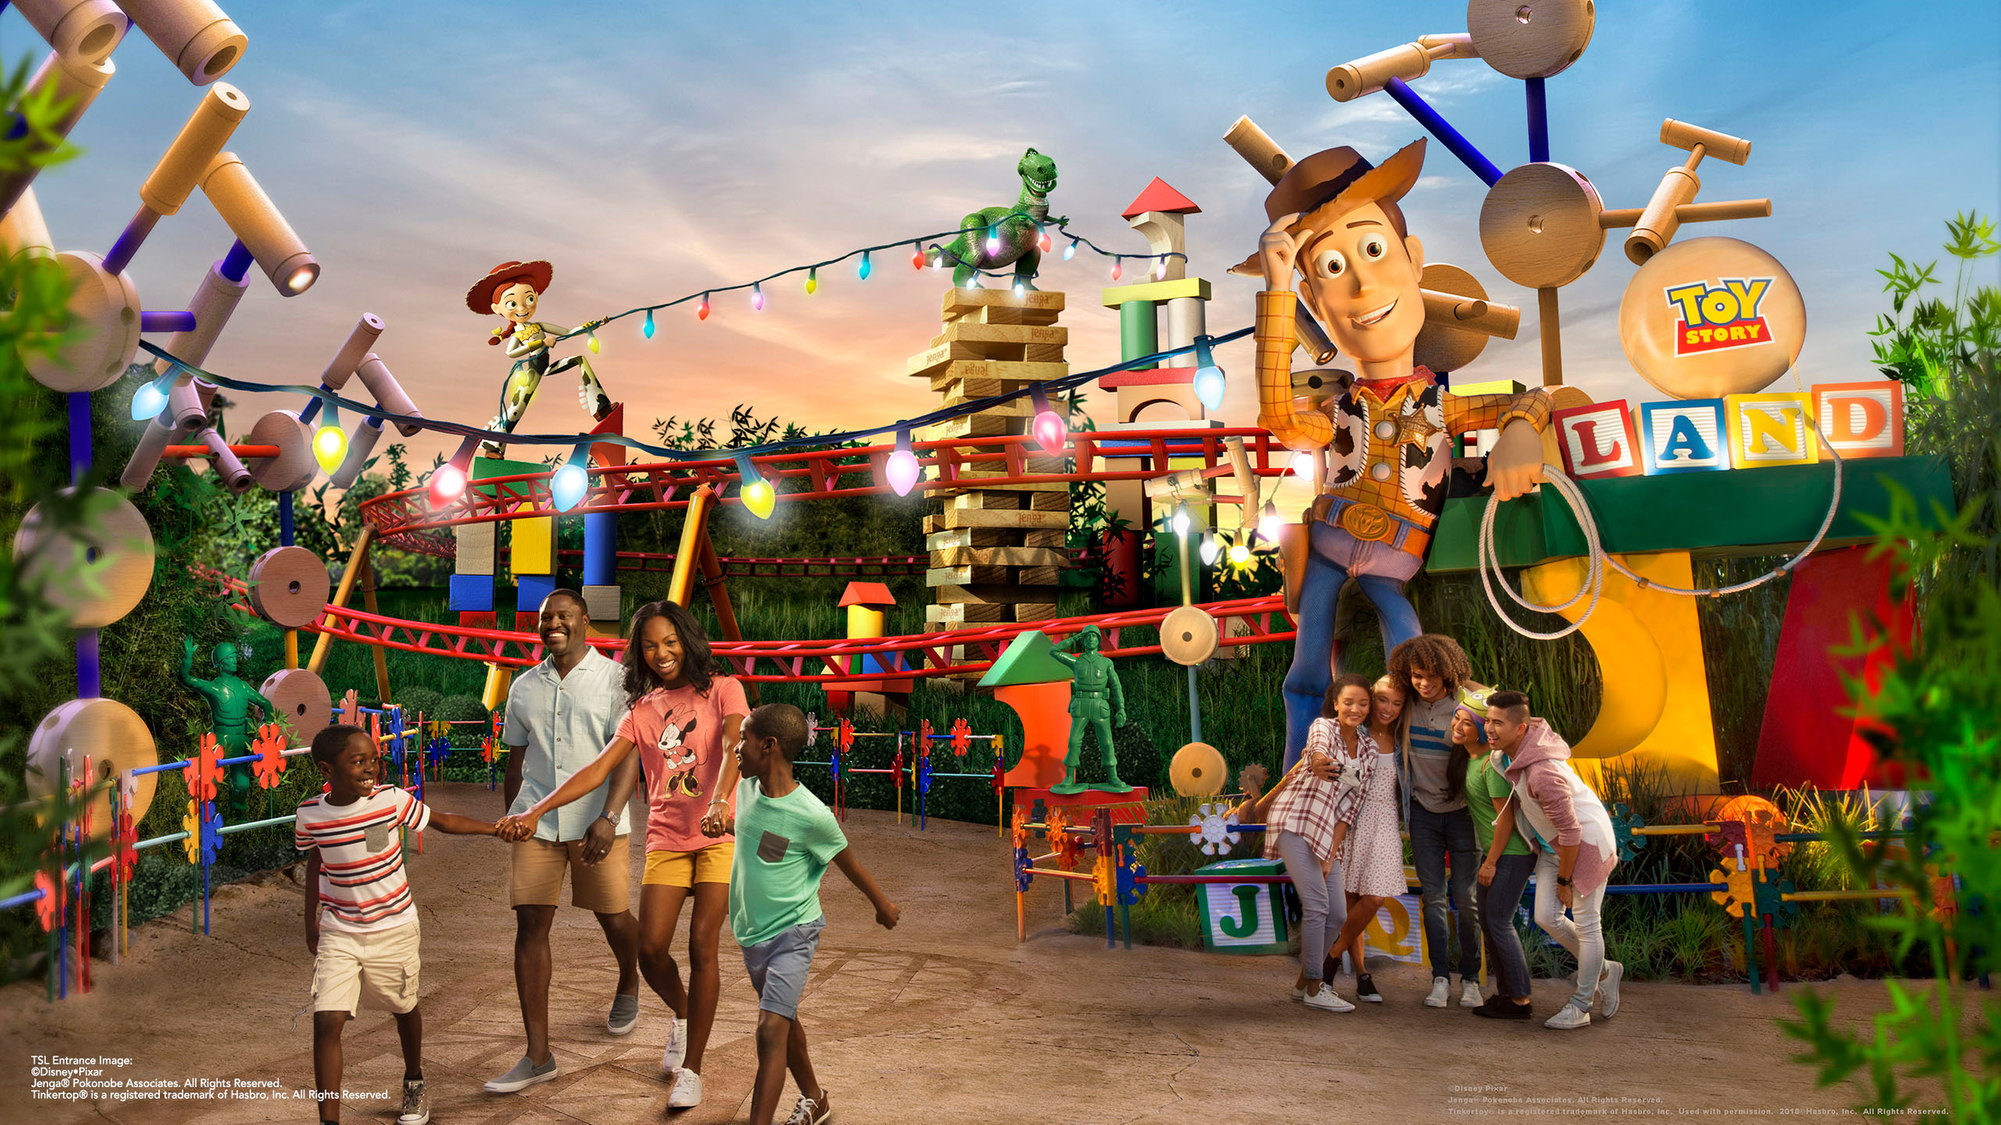 photos new slinky dog dash and toy story land entrance concept art released blog mickey. Black Bedroom Furniture Sets. Home Design Ideas